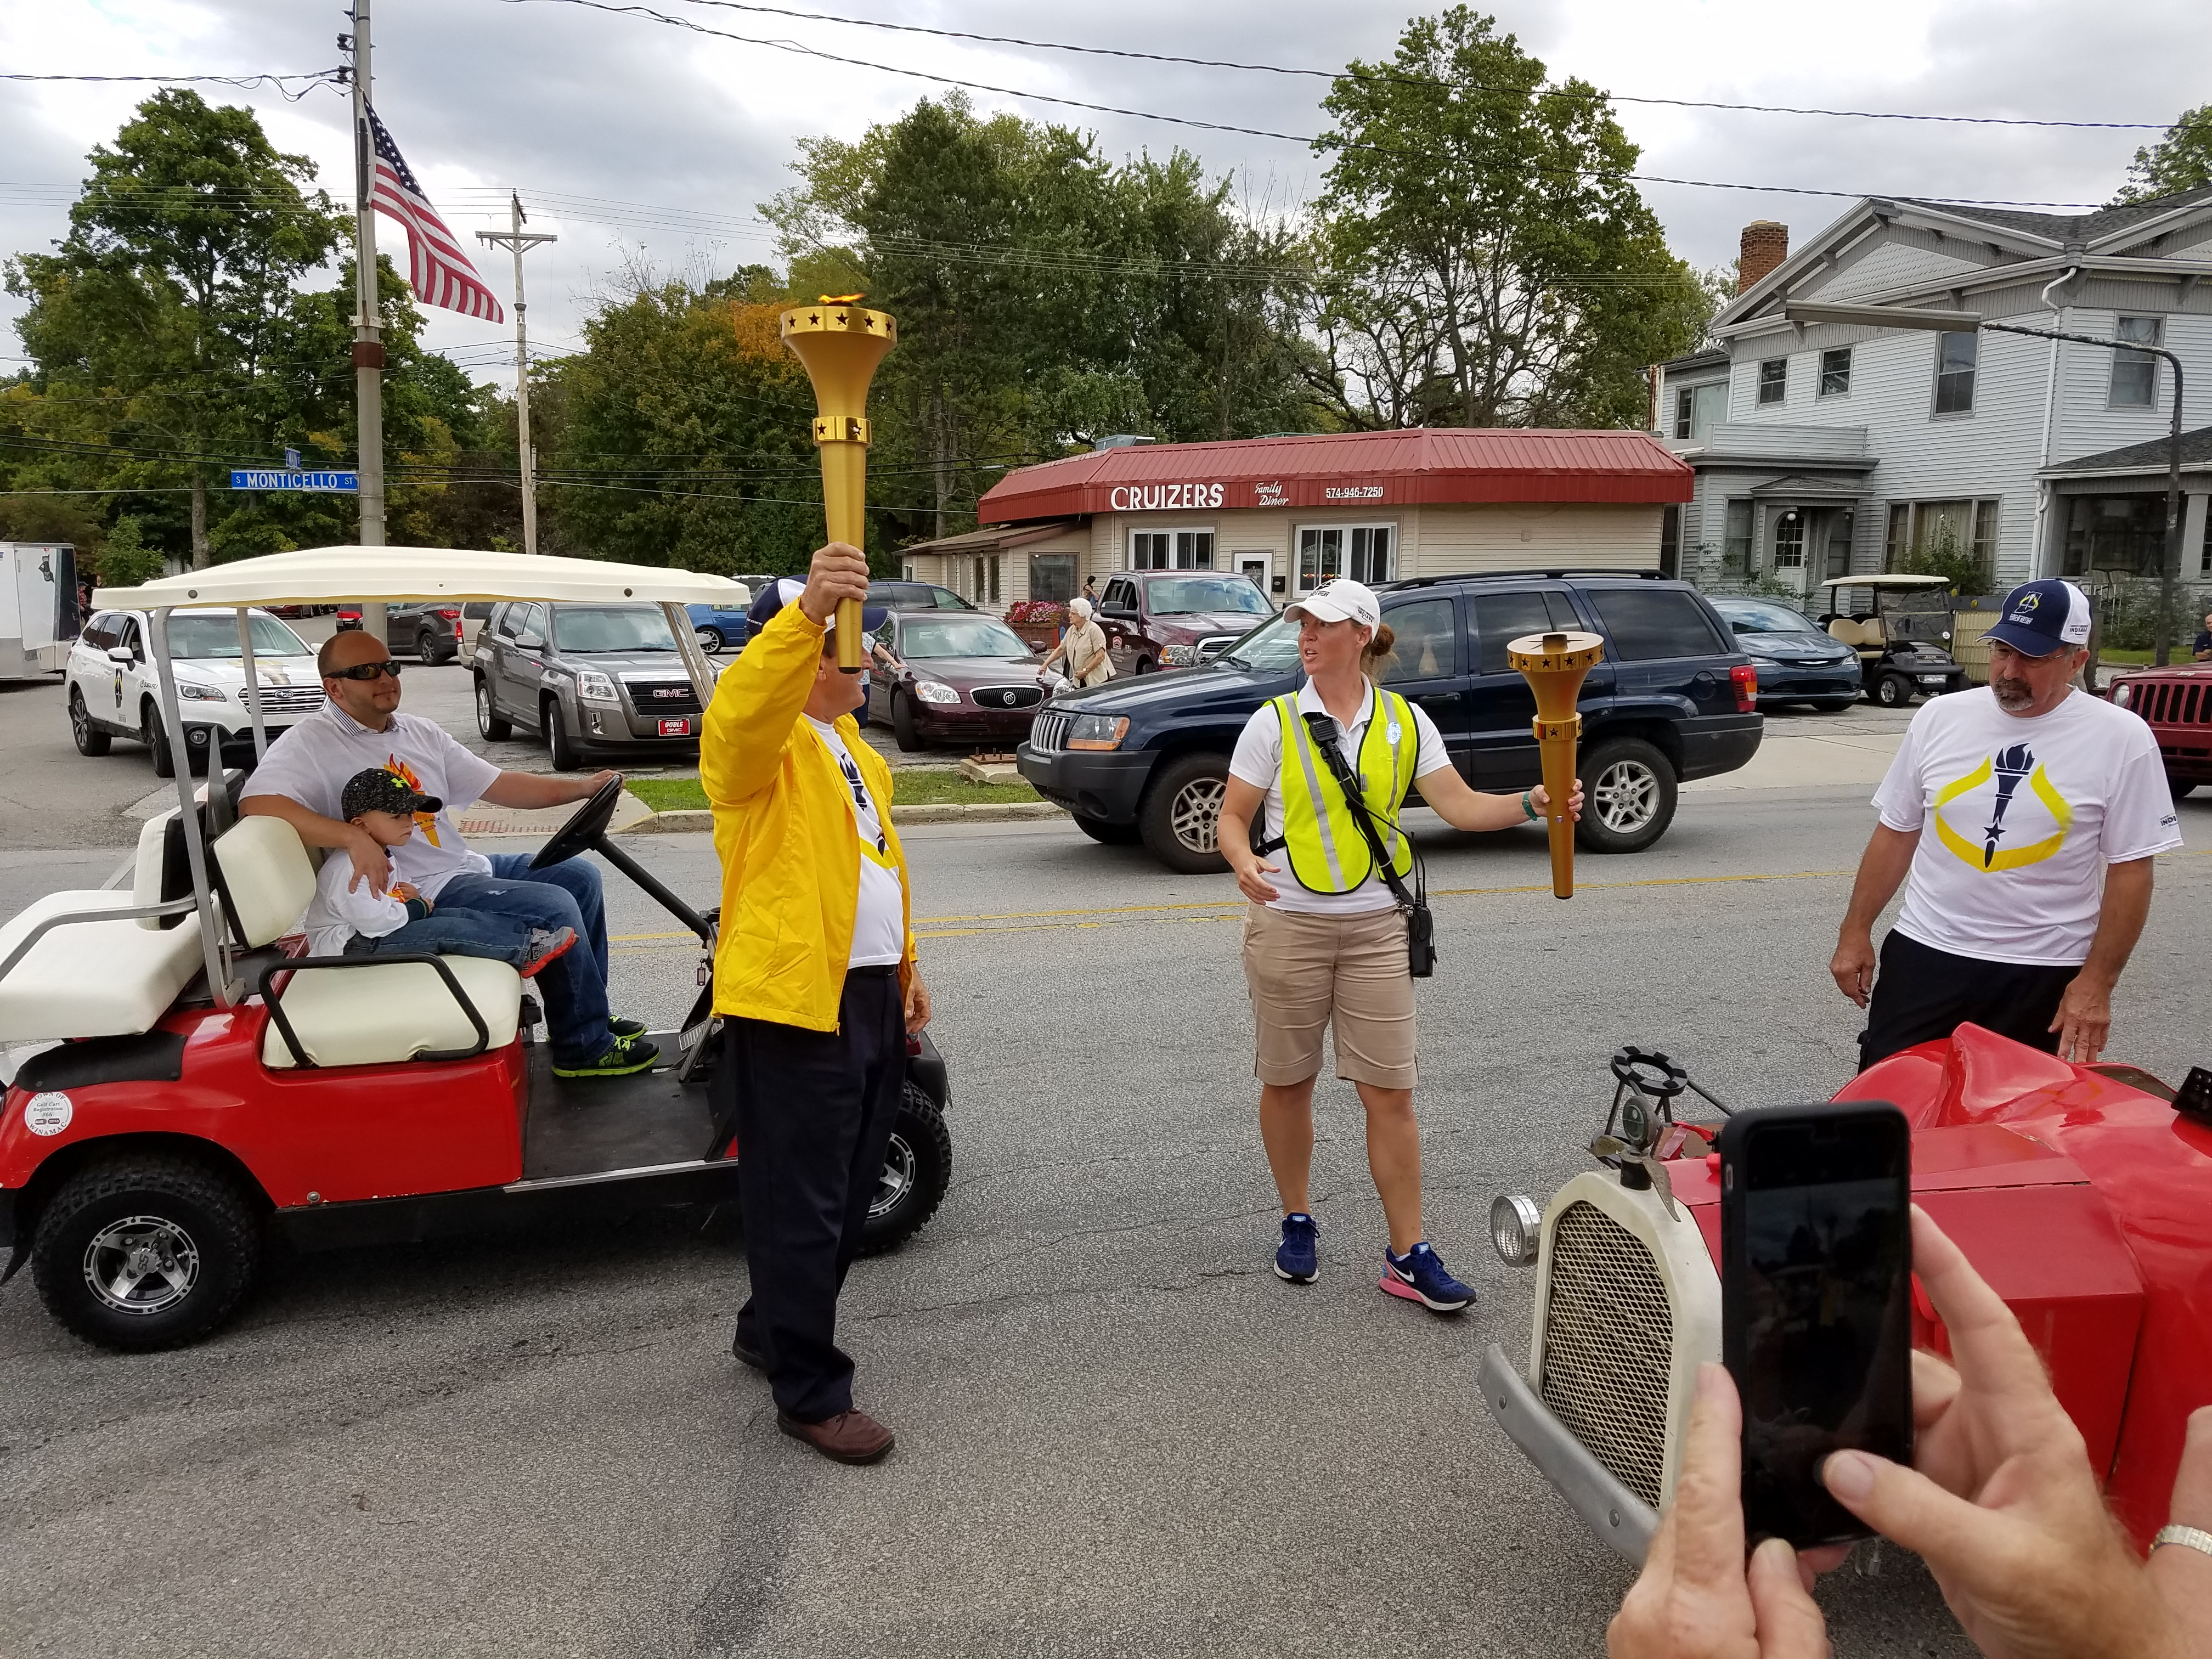 Indiana marshall county tippecanoe - The Indiana Bicentennial Torch Made Its Way To Pulaski County Friday The Torch Traveled Up U S 35 Before Heading Down The Tippecanoe River In A Canoe